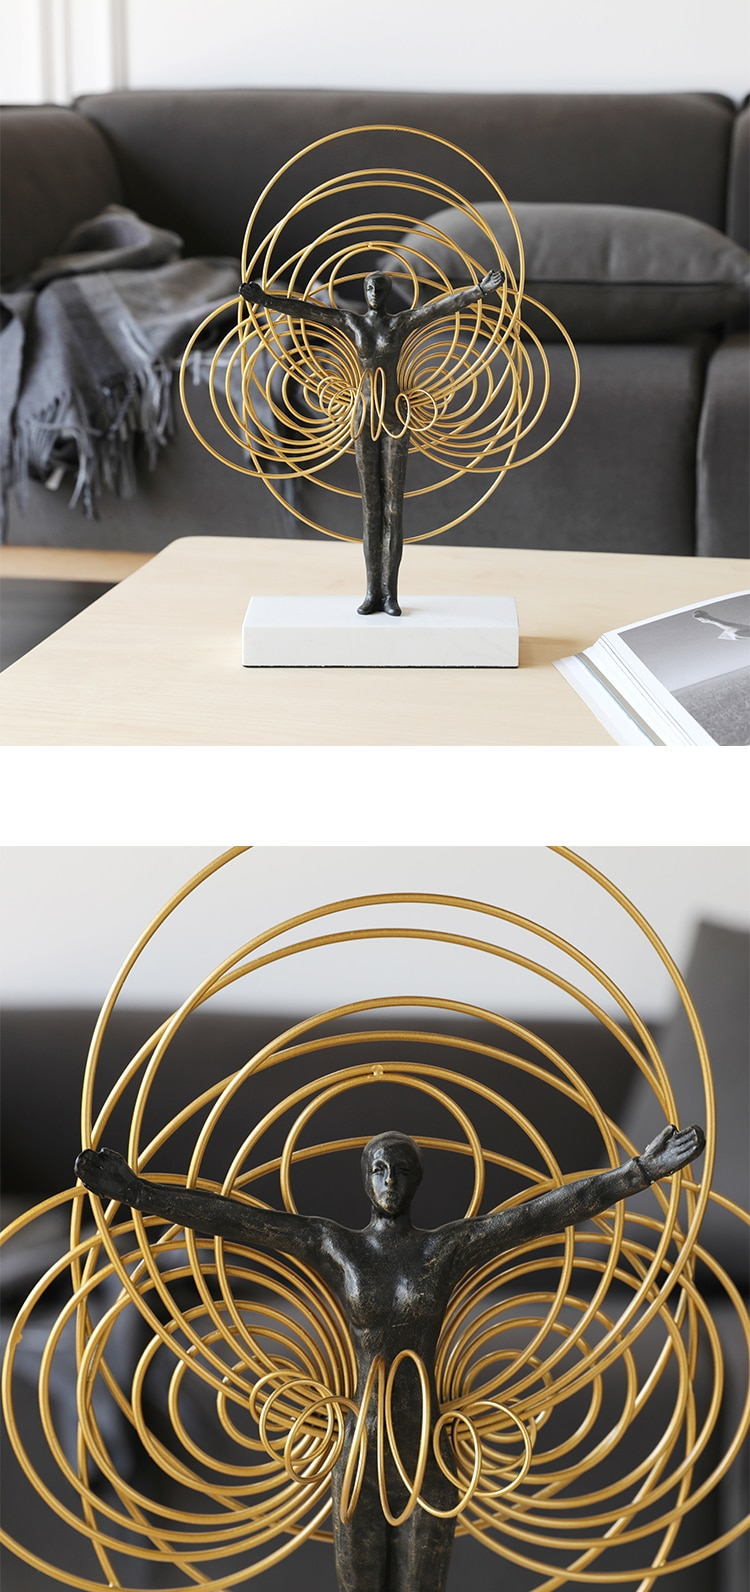 Home Decor Accessories Turn Hula Hoop Gymnastics Figure Figurine Living Room Ornament Objects Office White Marble Christmas Gift